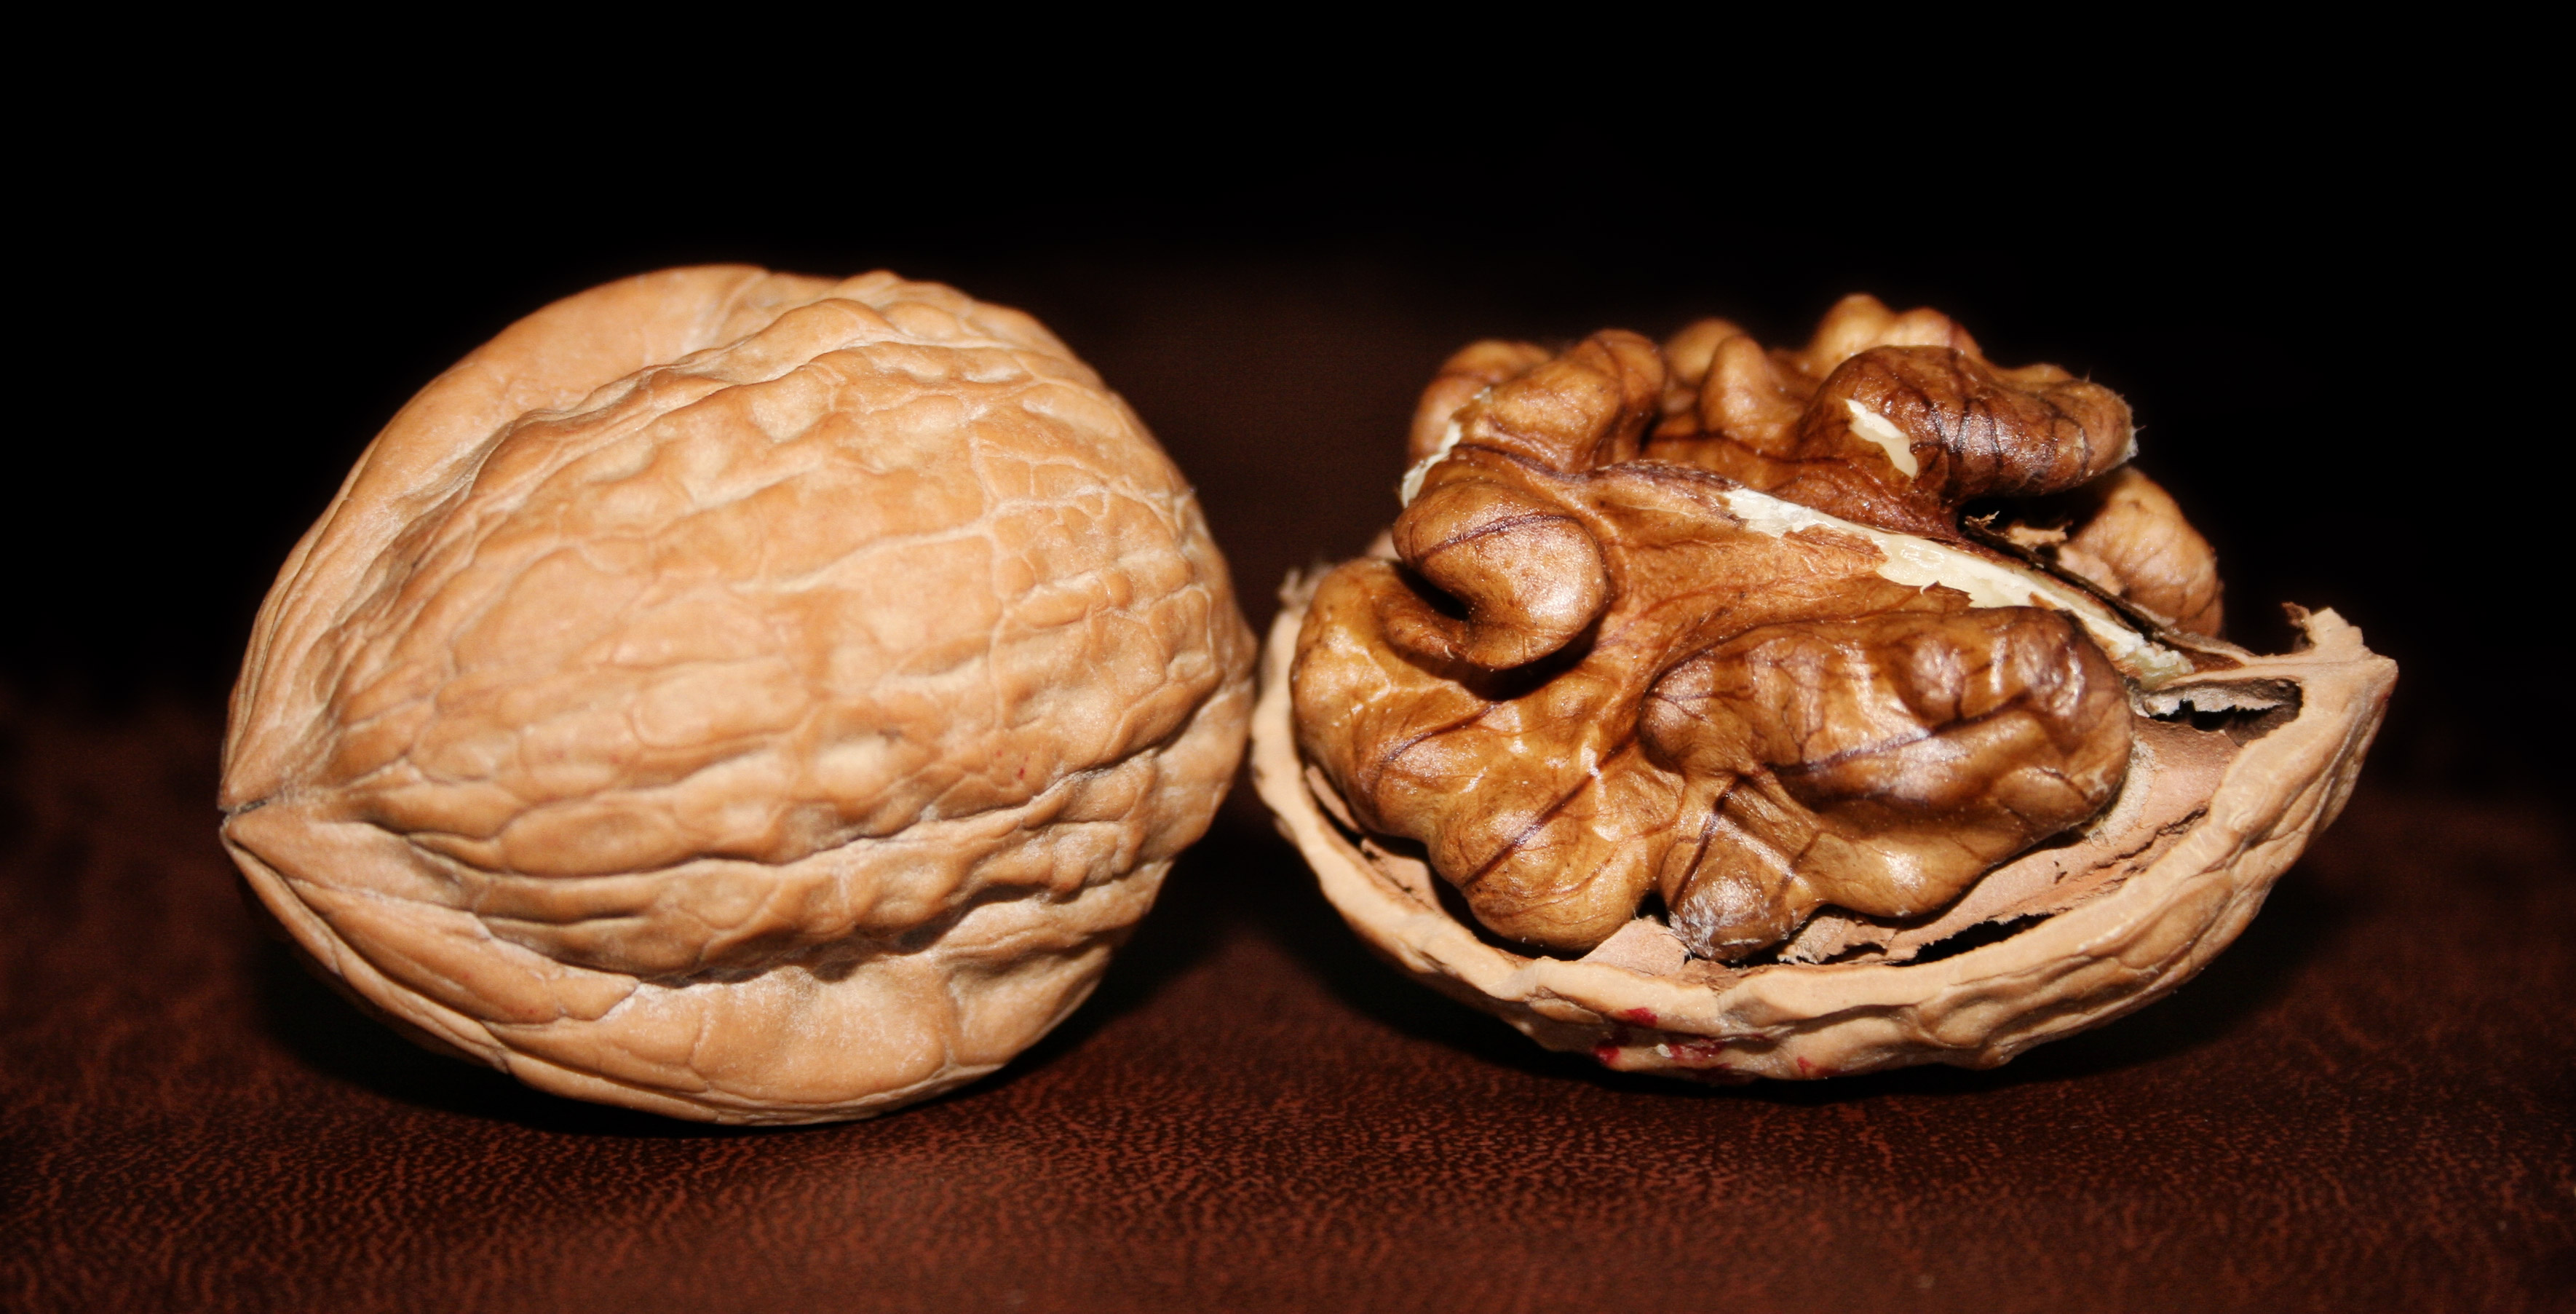 walnuts from wikipedia